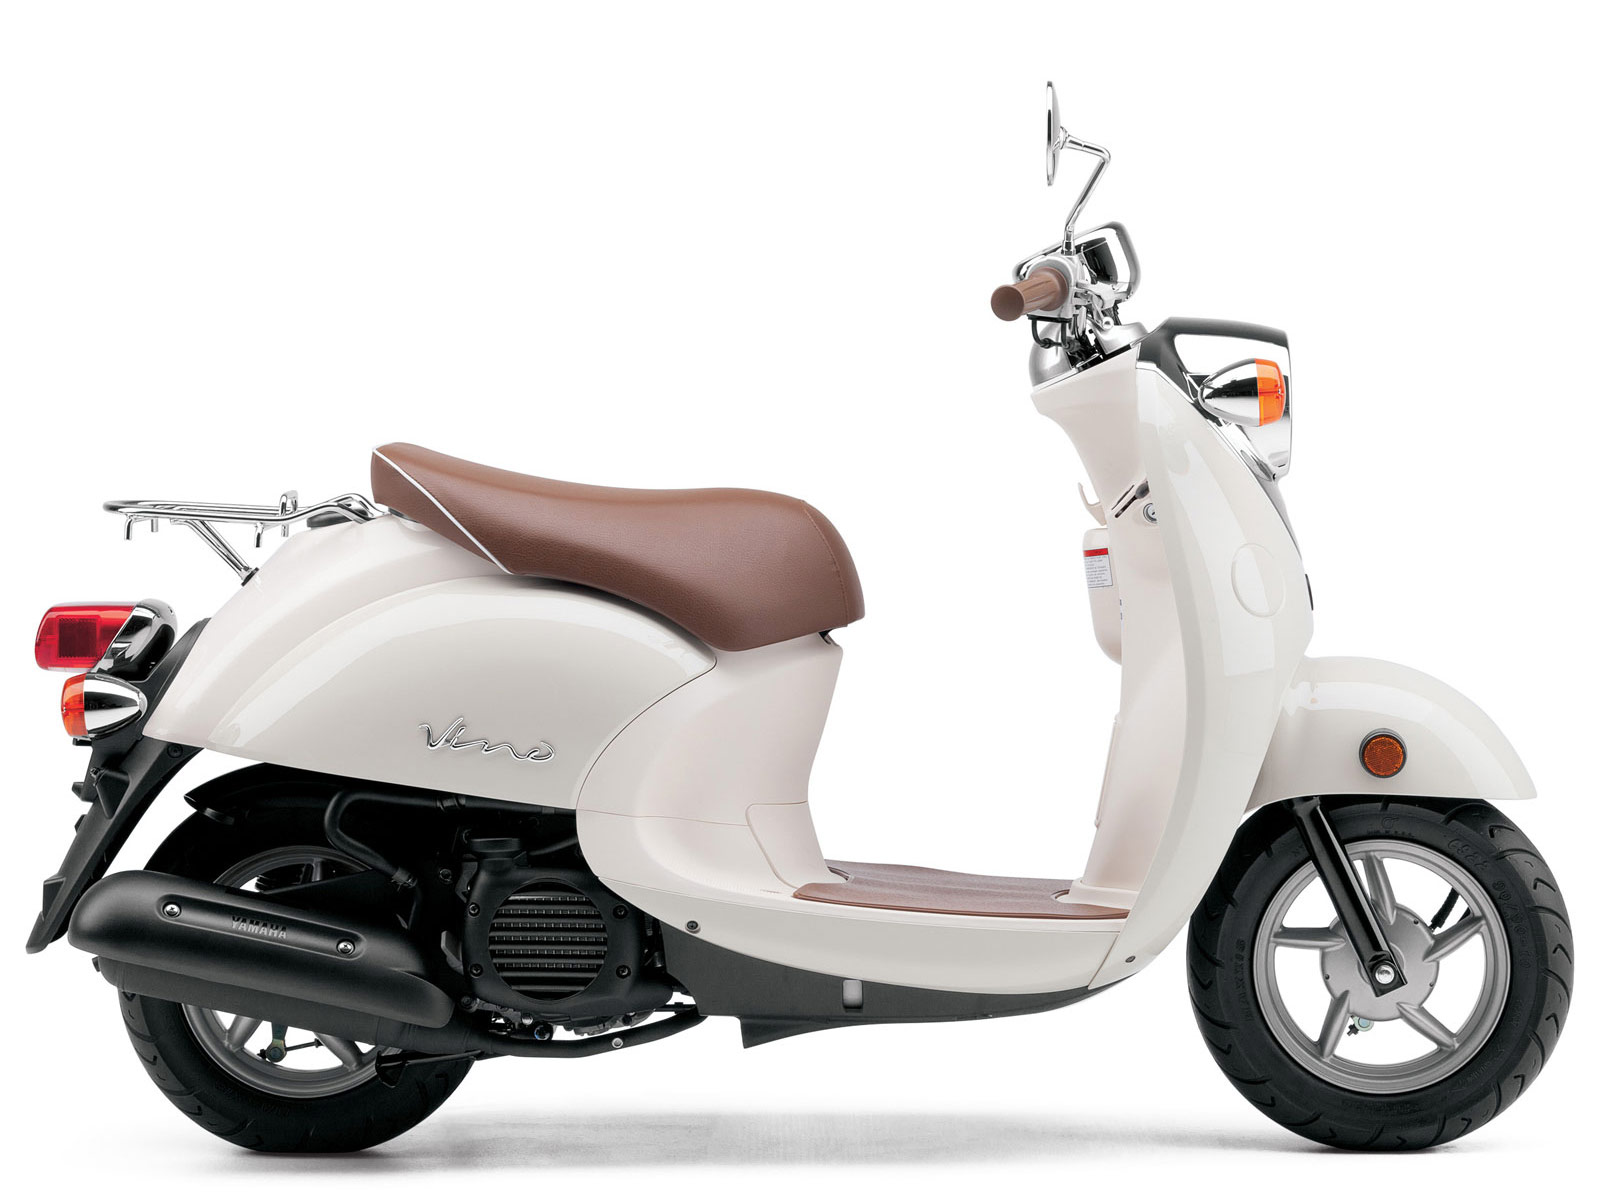 Yamaha pictures 2013 Vino 5 Classic Scooter Review